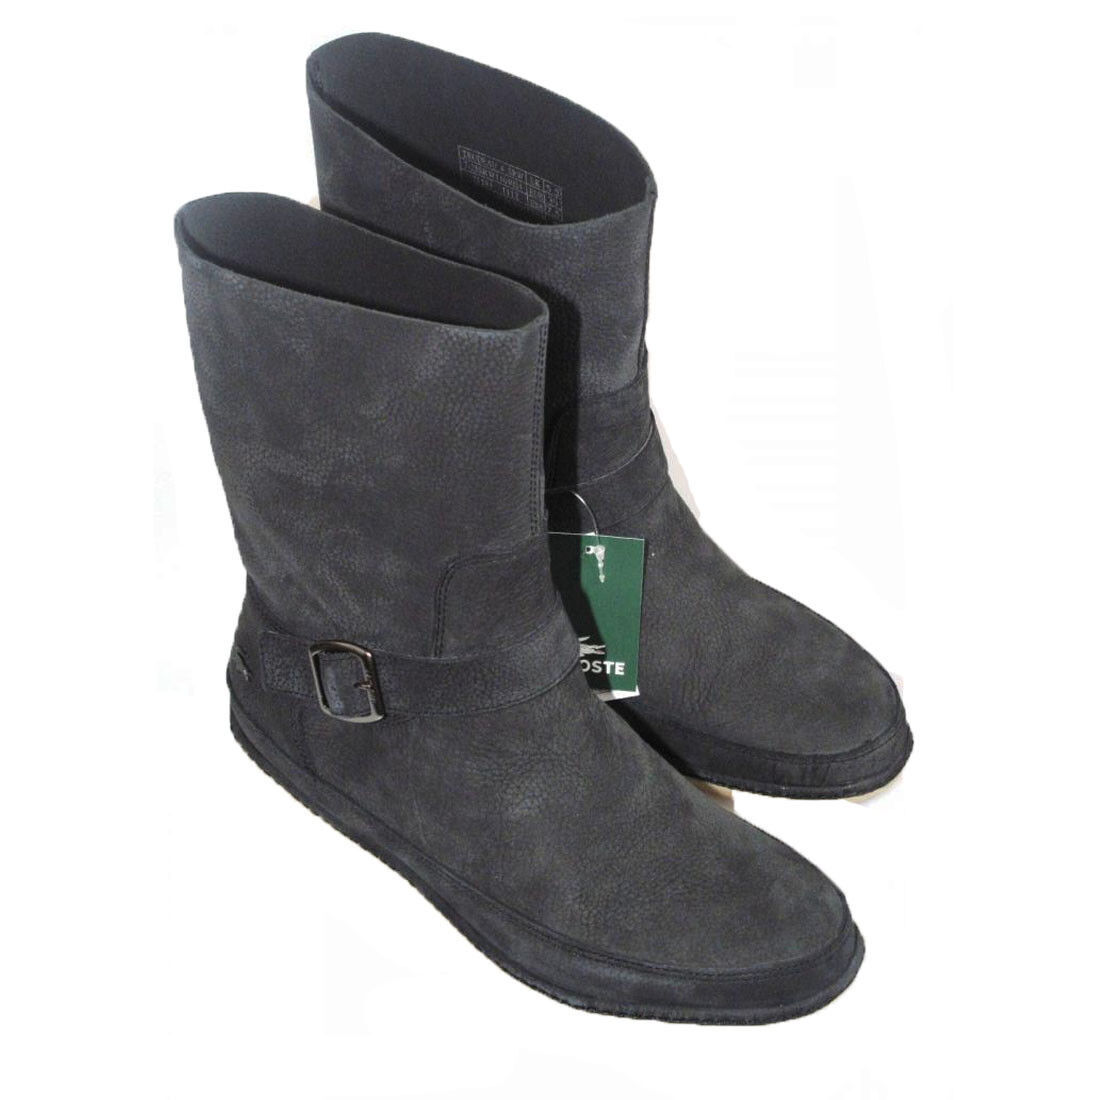 Zapatos especiales con descuento Lacoste Trudeau Womens Boots Black Mid pull on Leather mid Low Heel Calf Size 3